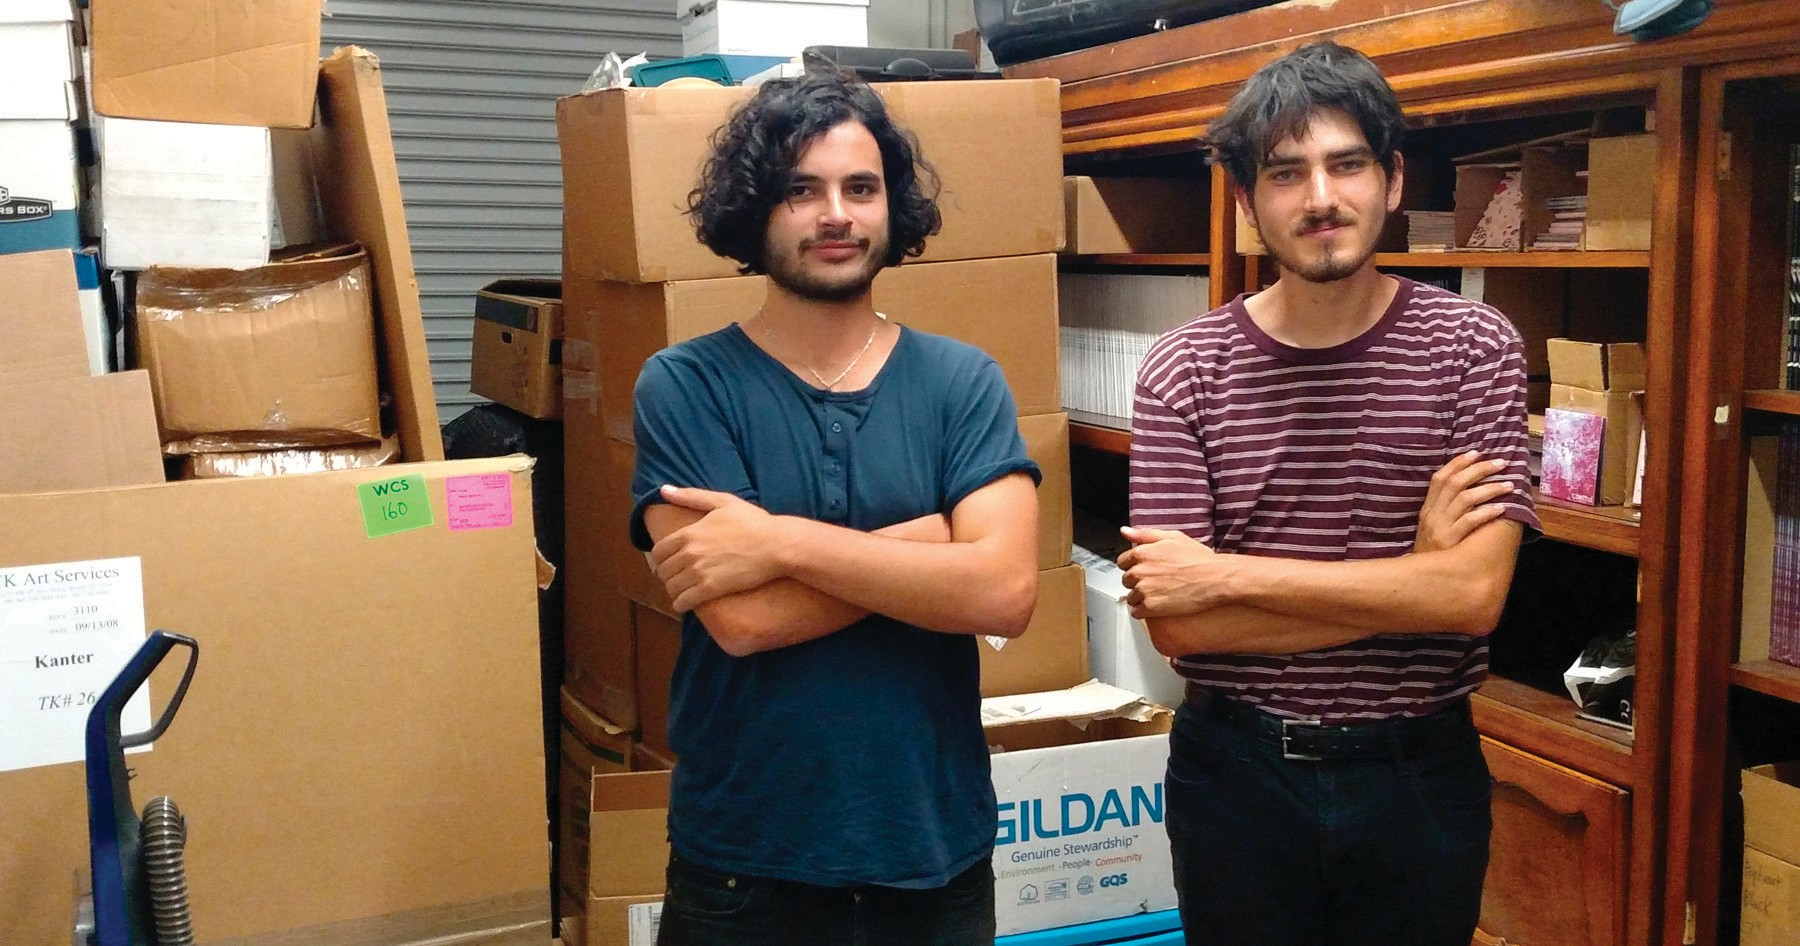 YOUNG ENTREPRENEURS—Co-owners of Danger Collective Records, Jai Chebaia, left, and Reed Kanter, along with some of the company's inventory. IAN BRADLEY/Acorn Newspapers